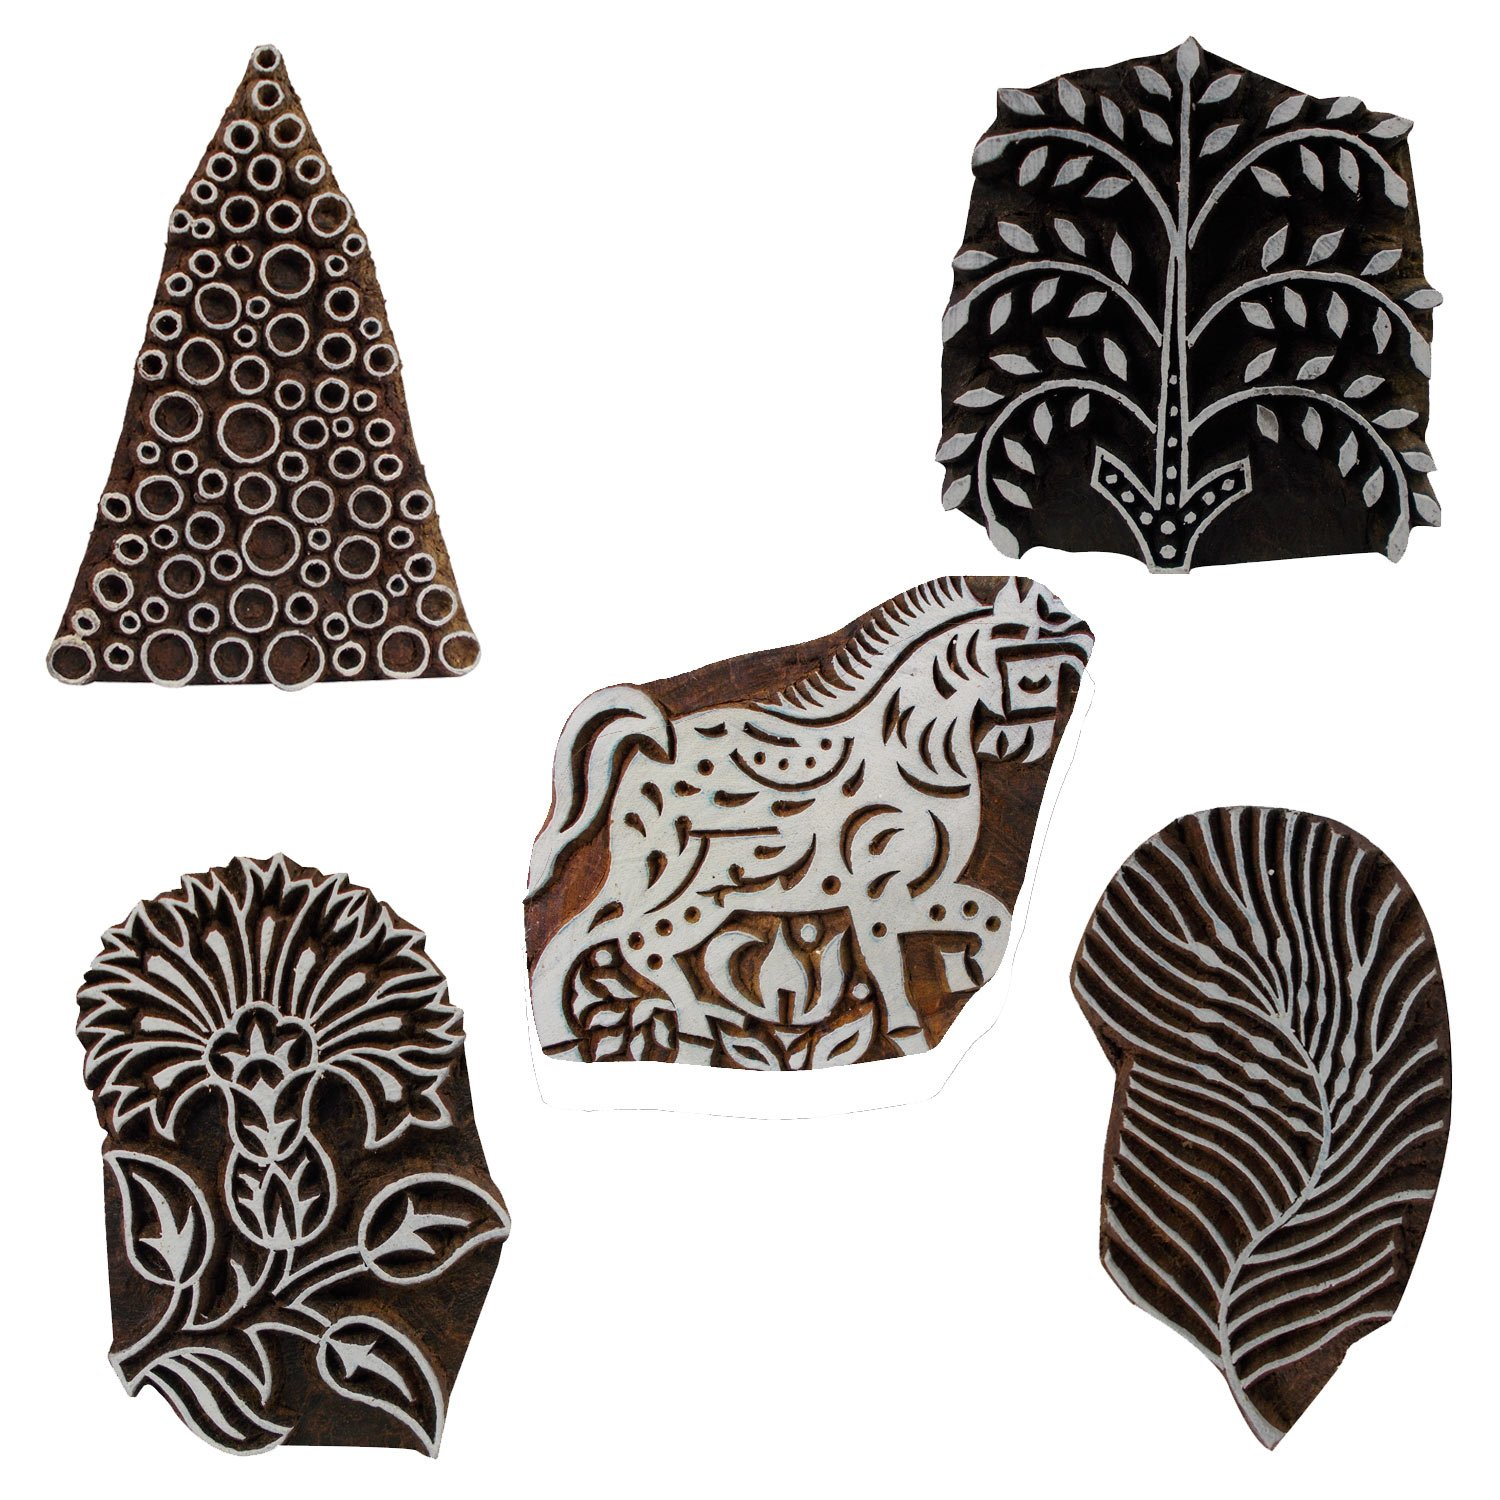 Lot of 5 Wooden Textile Handmade Floral Horse Christmas Tree Printing Textile Block Clay Potter Craft Scrapbook Stamps